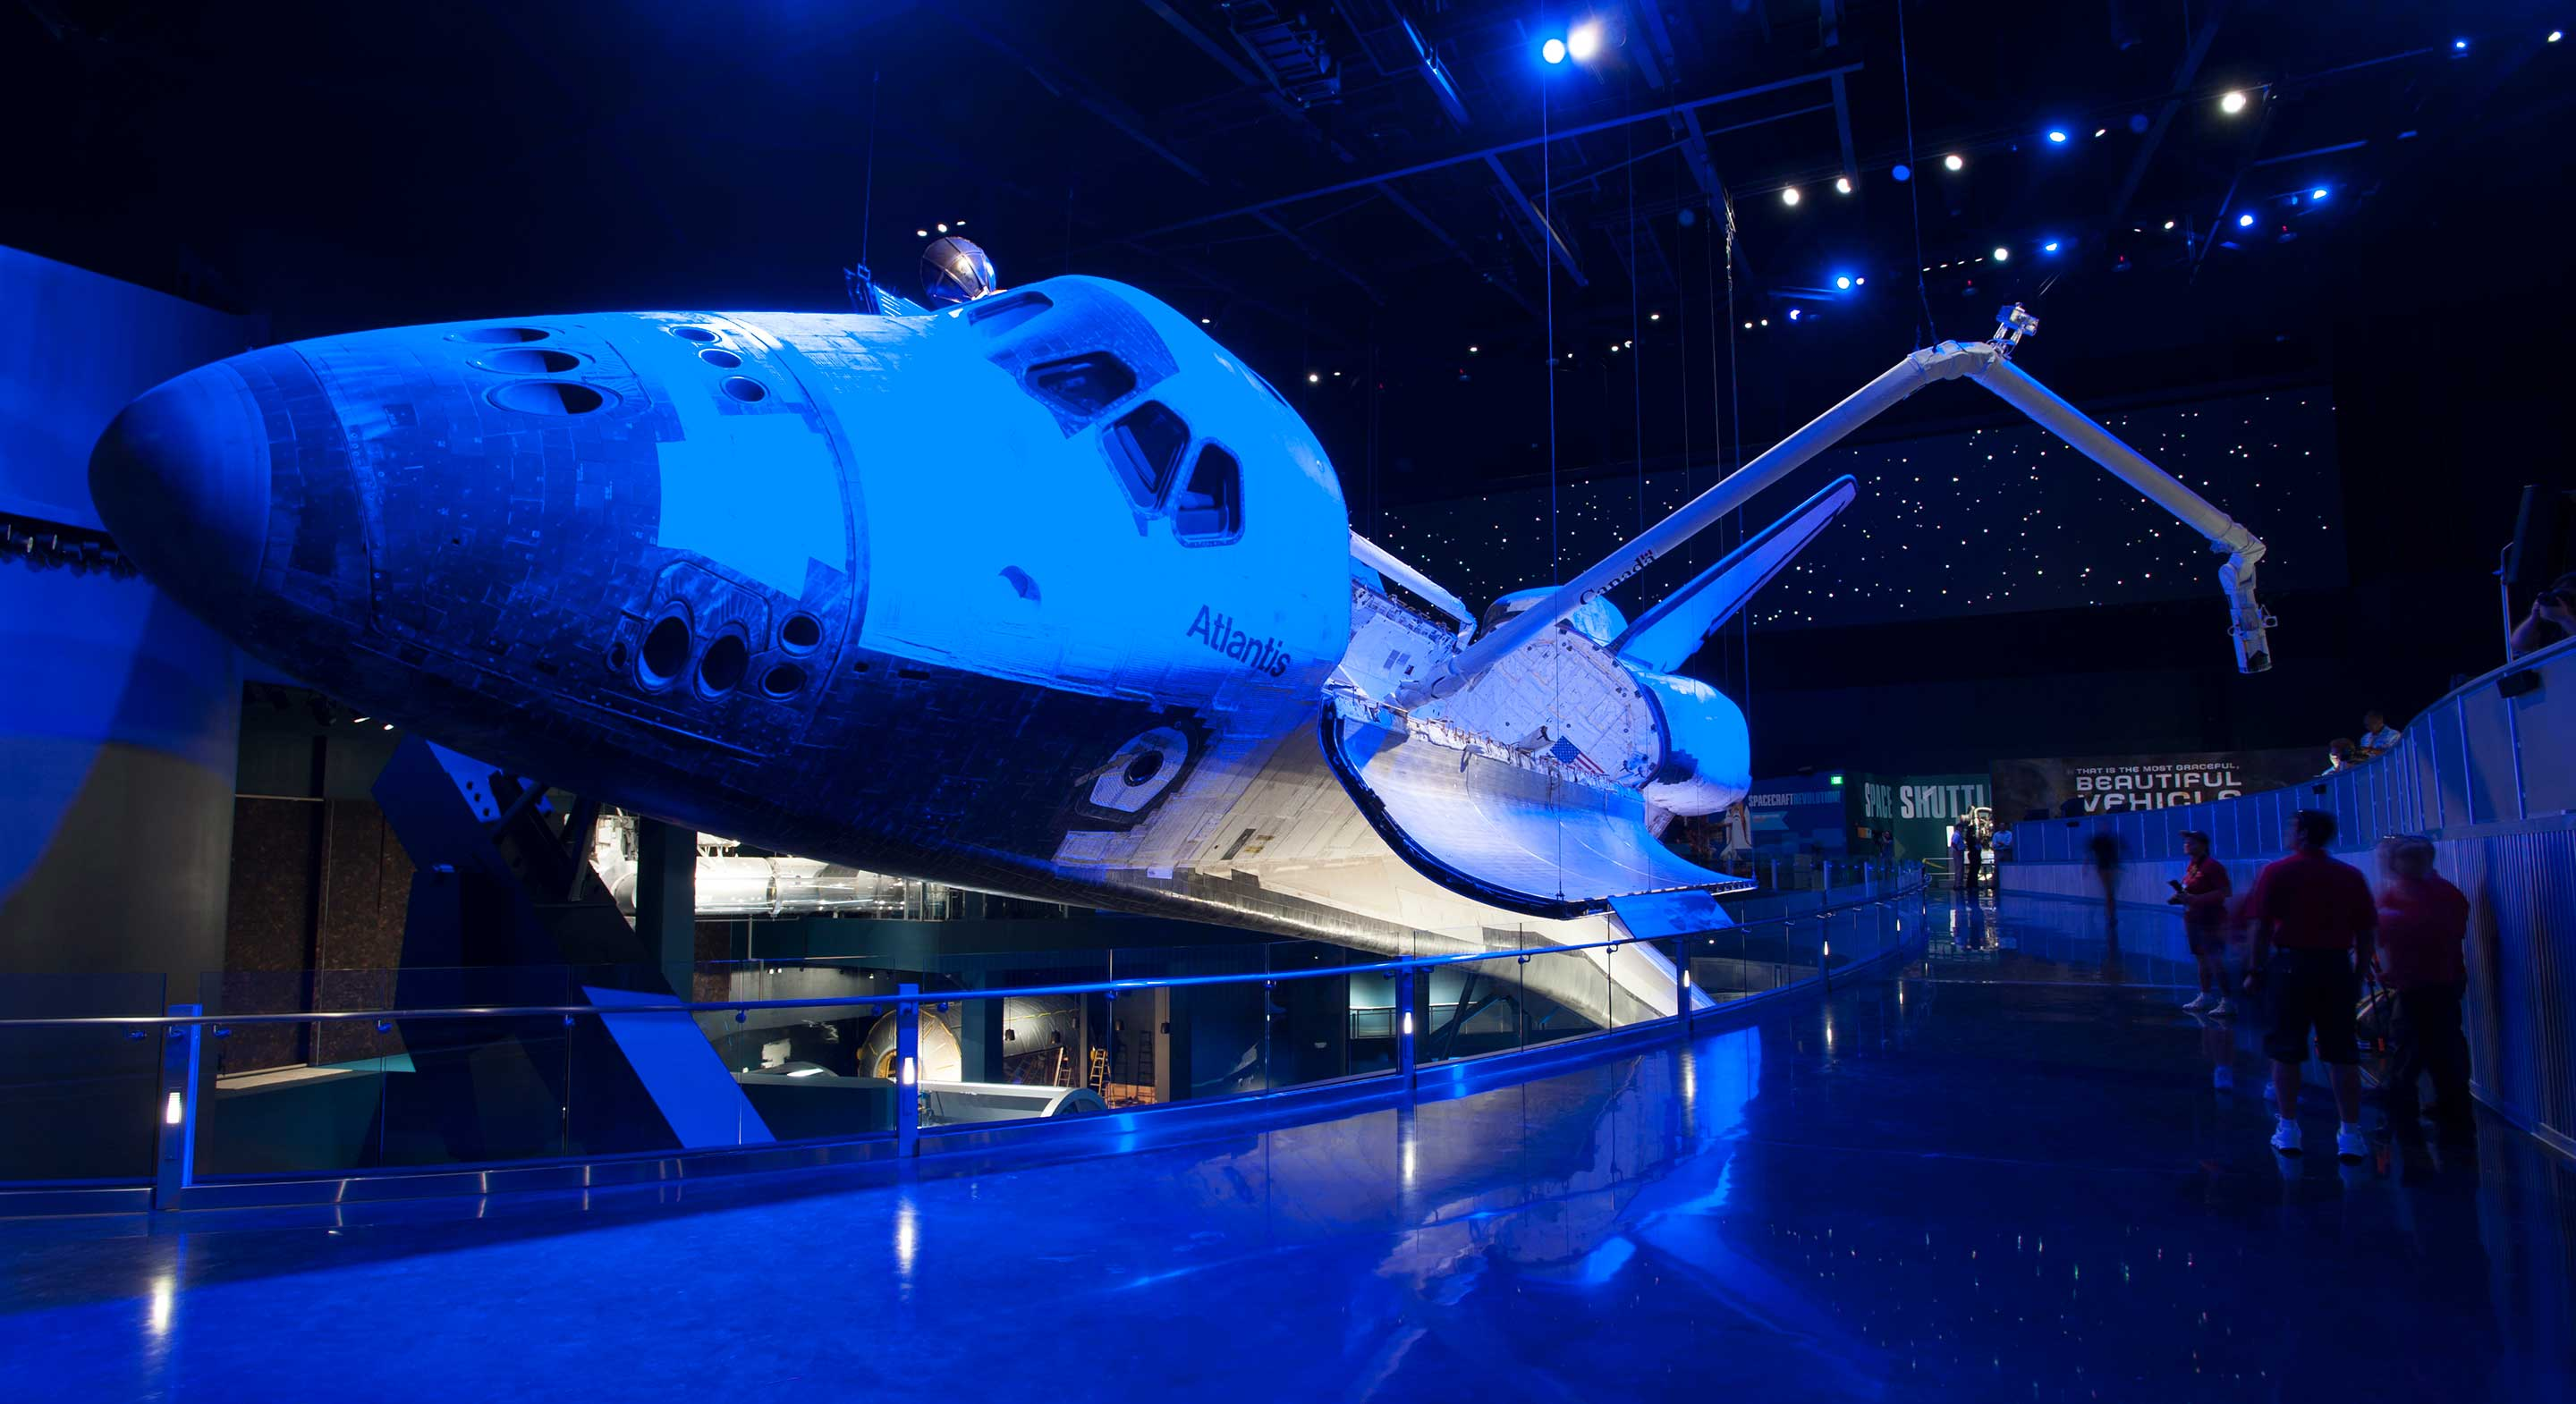 Kennedy-Space-Center-Visitor_Space-Shuttle-Atlantis_1